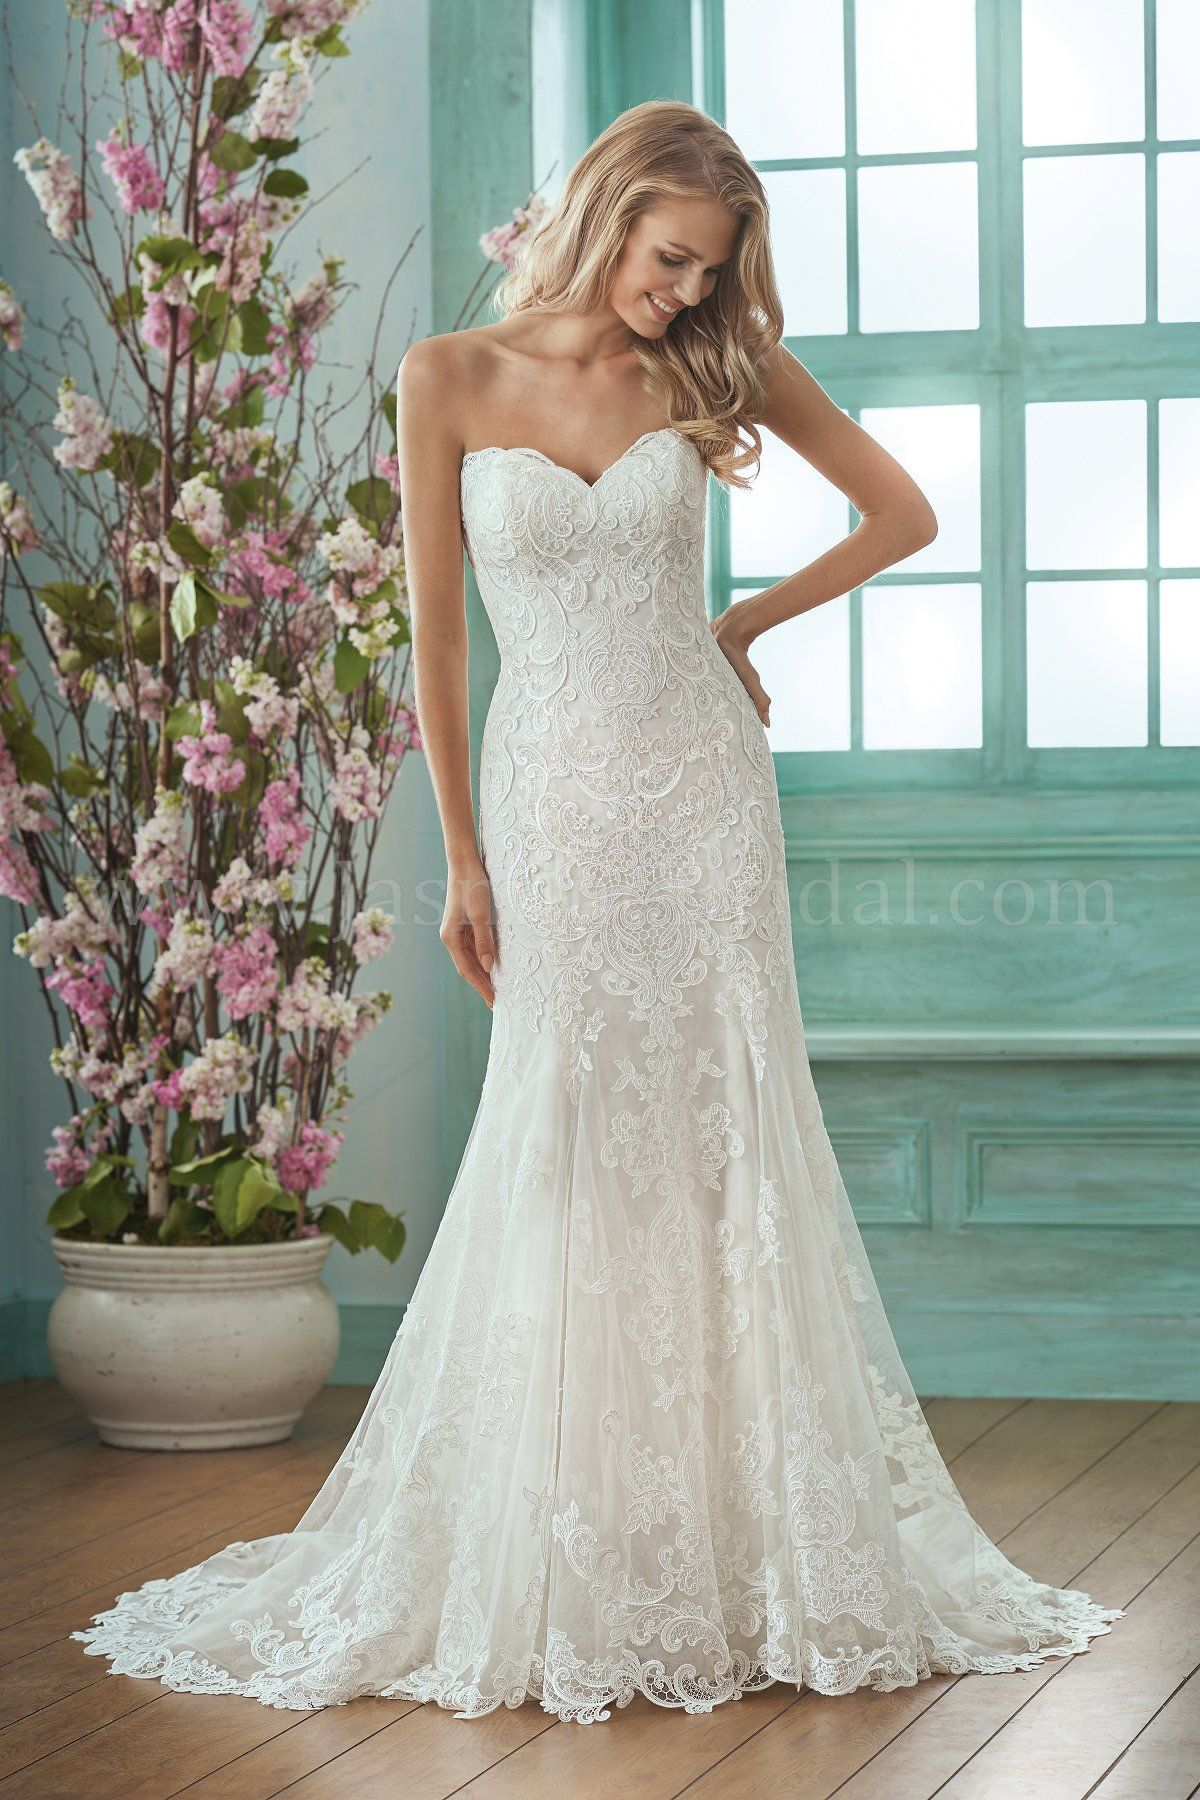 Jasmine bridal collection style f in ivoryivory